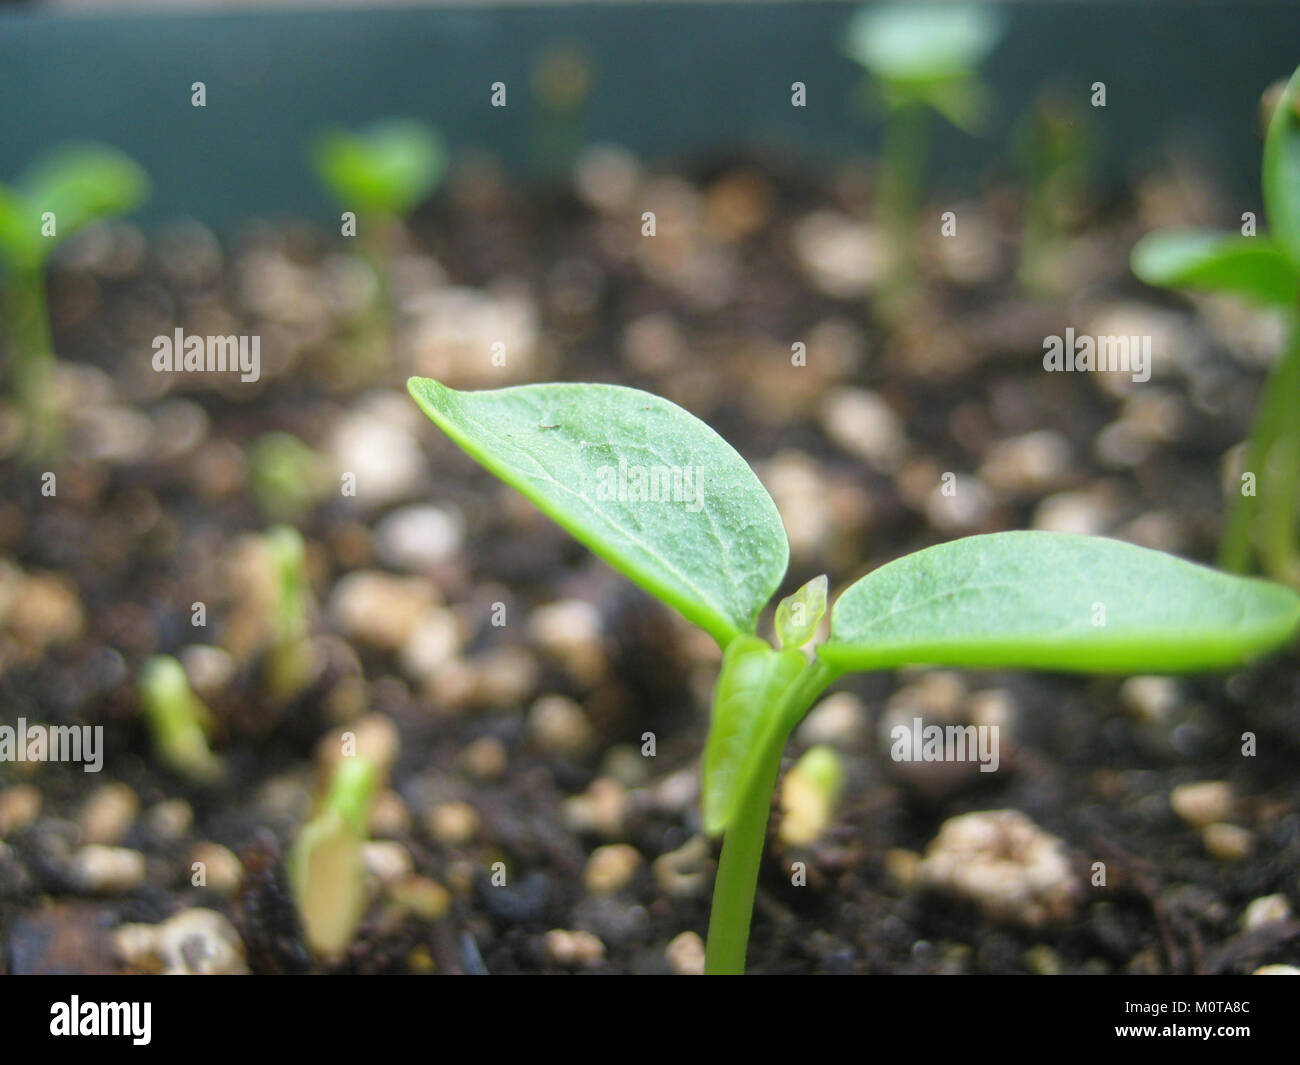 Pictures Of Papaya Seedlings